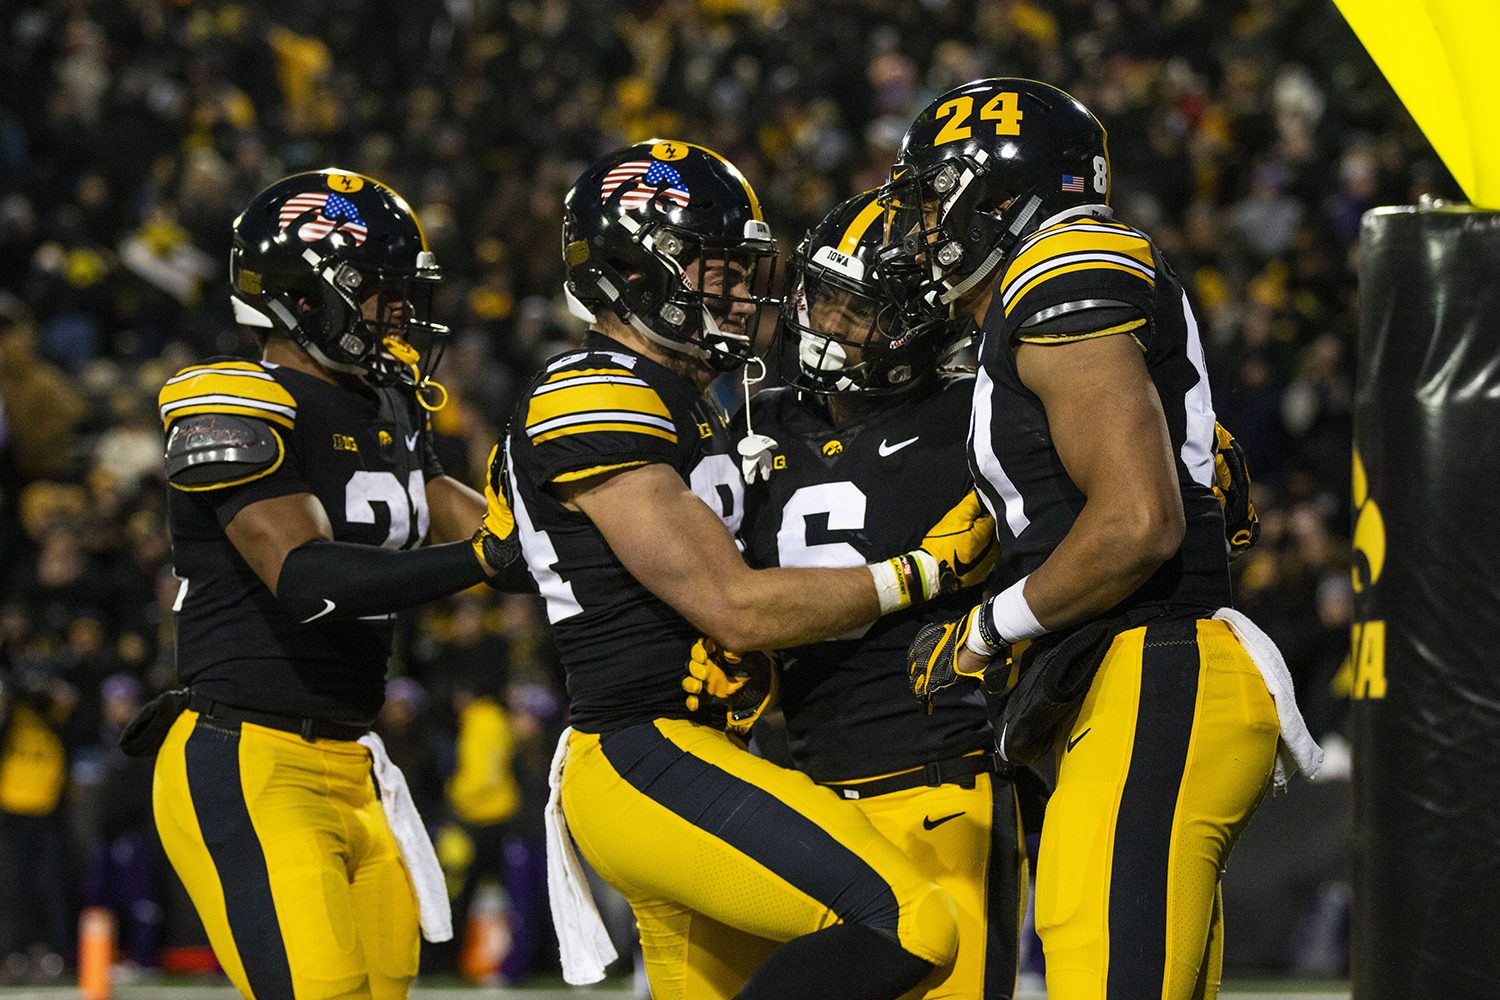 Iowa+players+celebrate+Ihmir+Smith-Marsette%27s+%286%29+touchdown+during+the+Iowa%2FNorthwestern+football+game+at+Kinnick+Stadium+on+Saturday%2C+November+10%2C+2018.+The+Wildcats+defeated+the+Hawkeyes%2C+14-10.+%28Lily+Smith%2FThe+Daily+Iowan%29